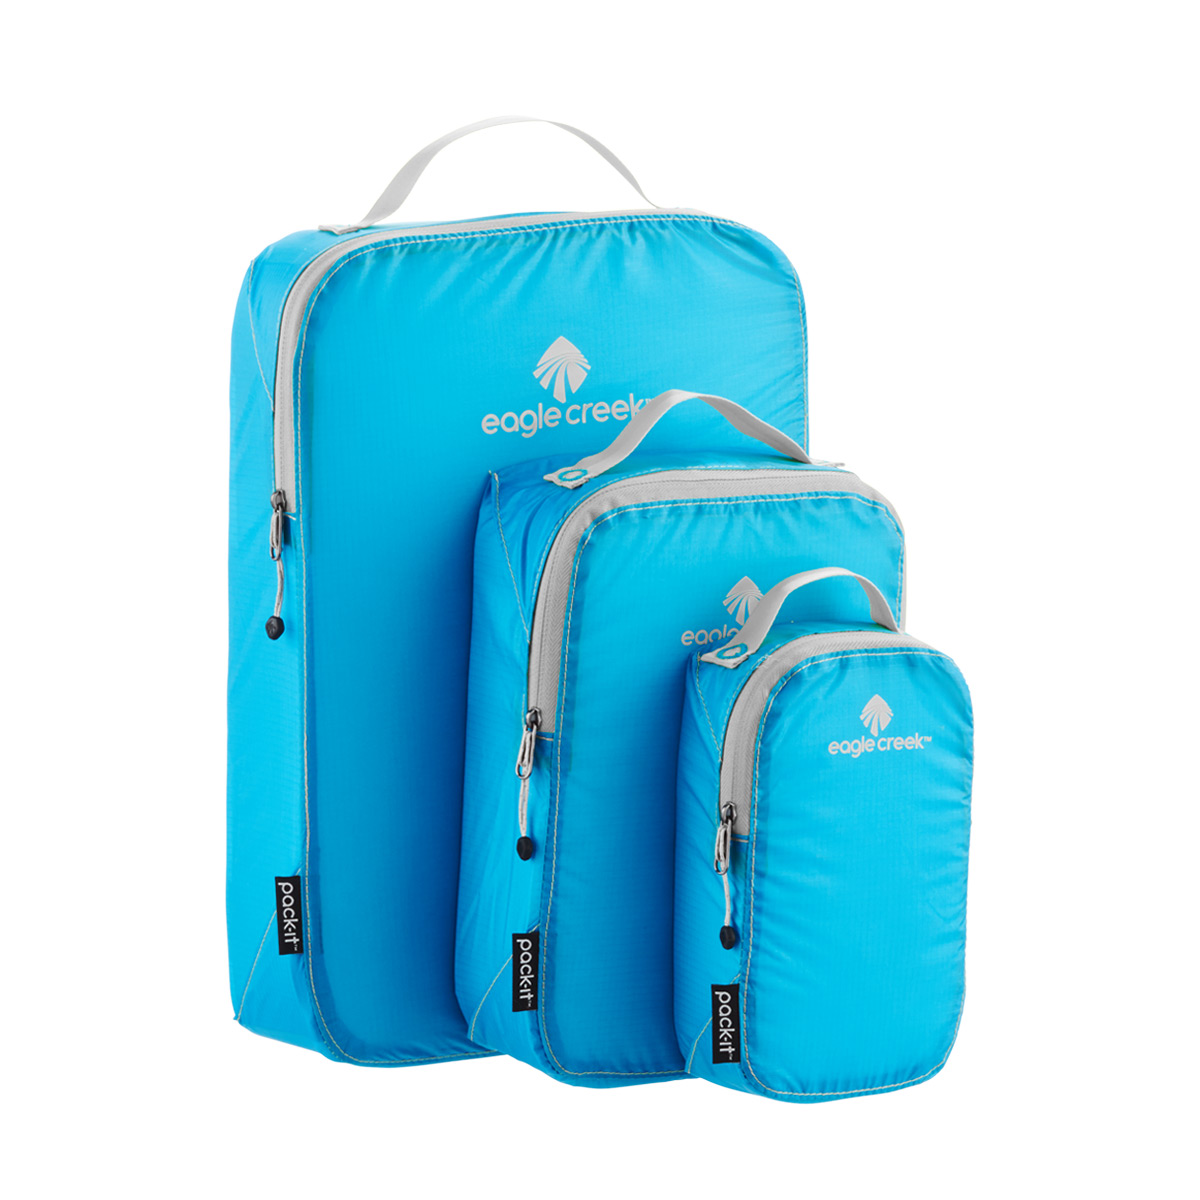 Eagle Creek Brilliant Blue Specter Pack-It Cubes